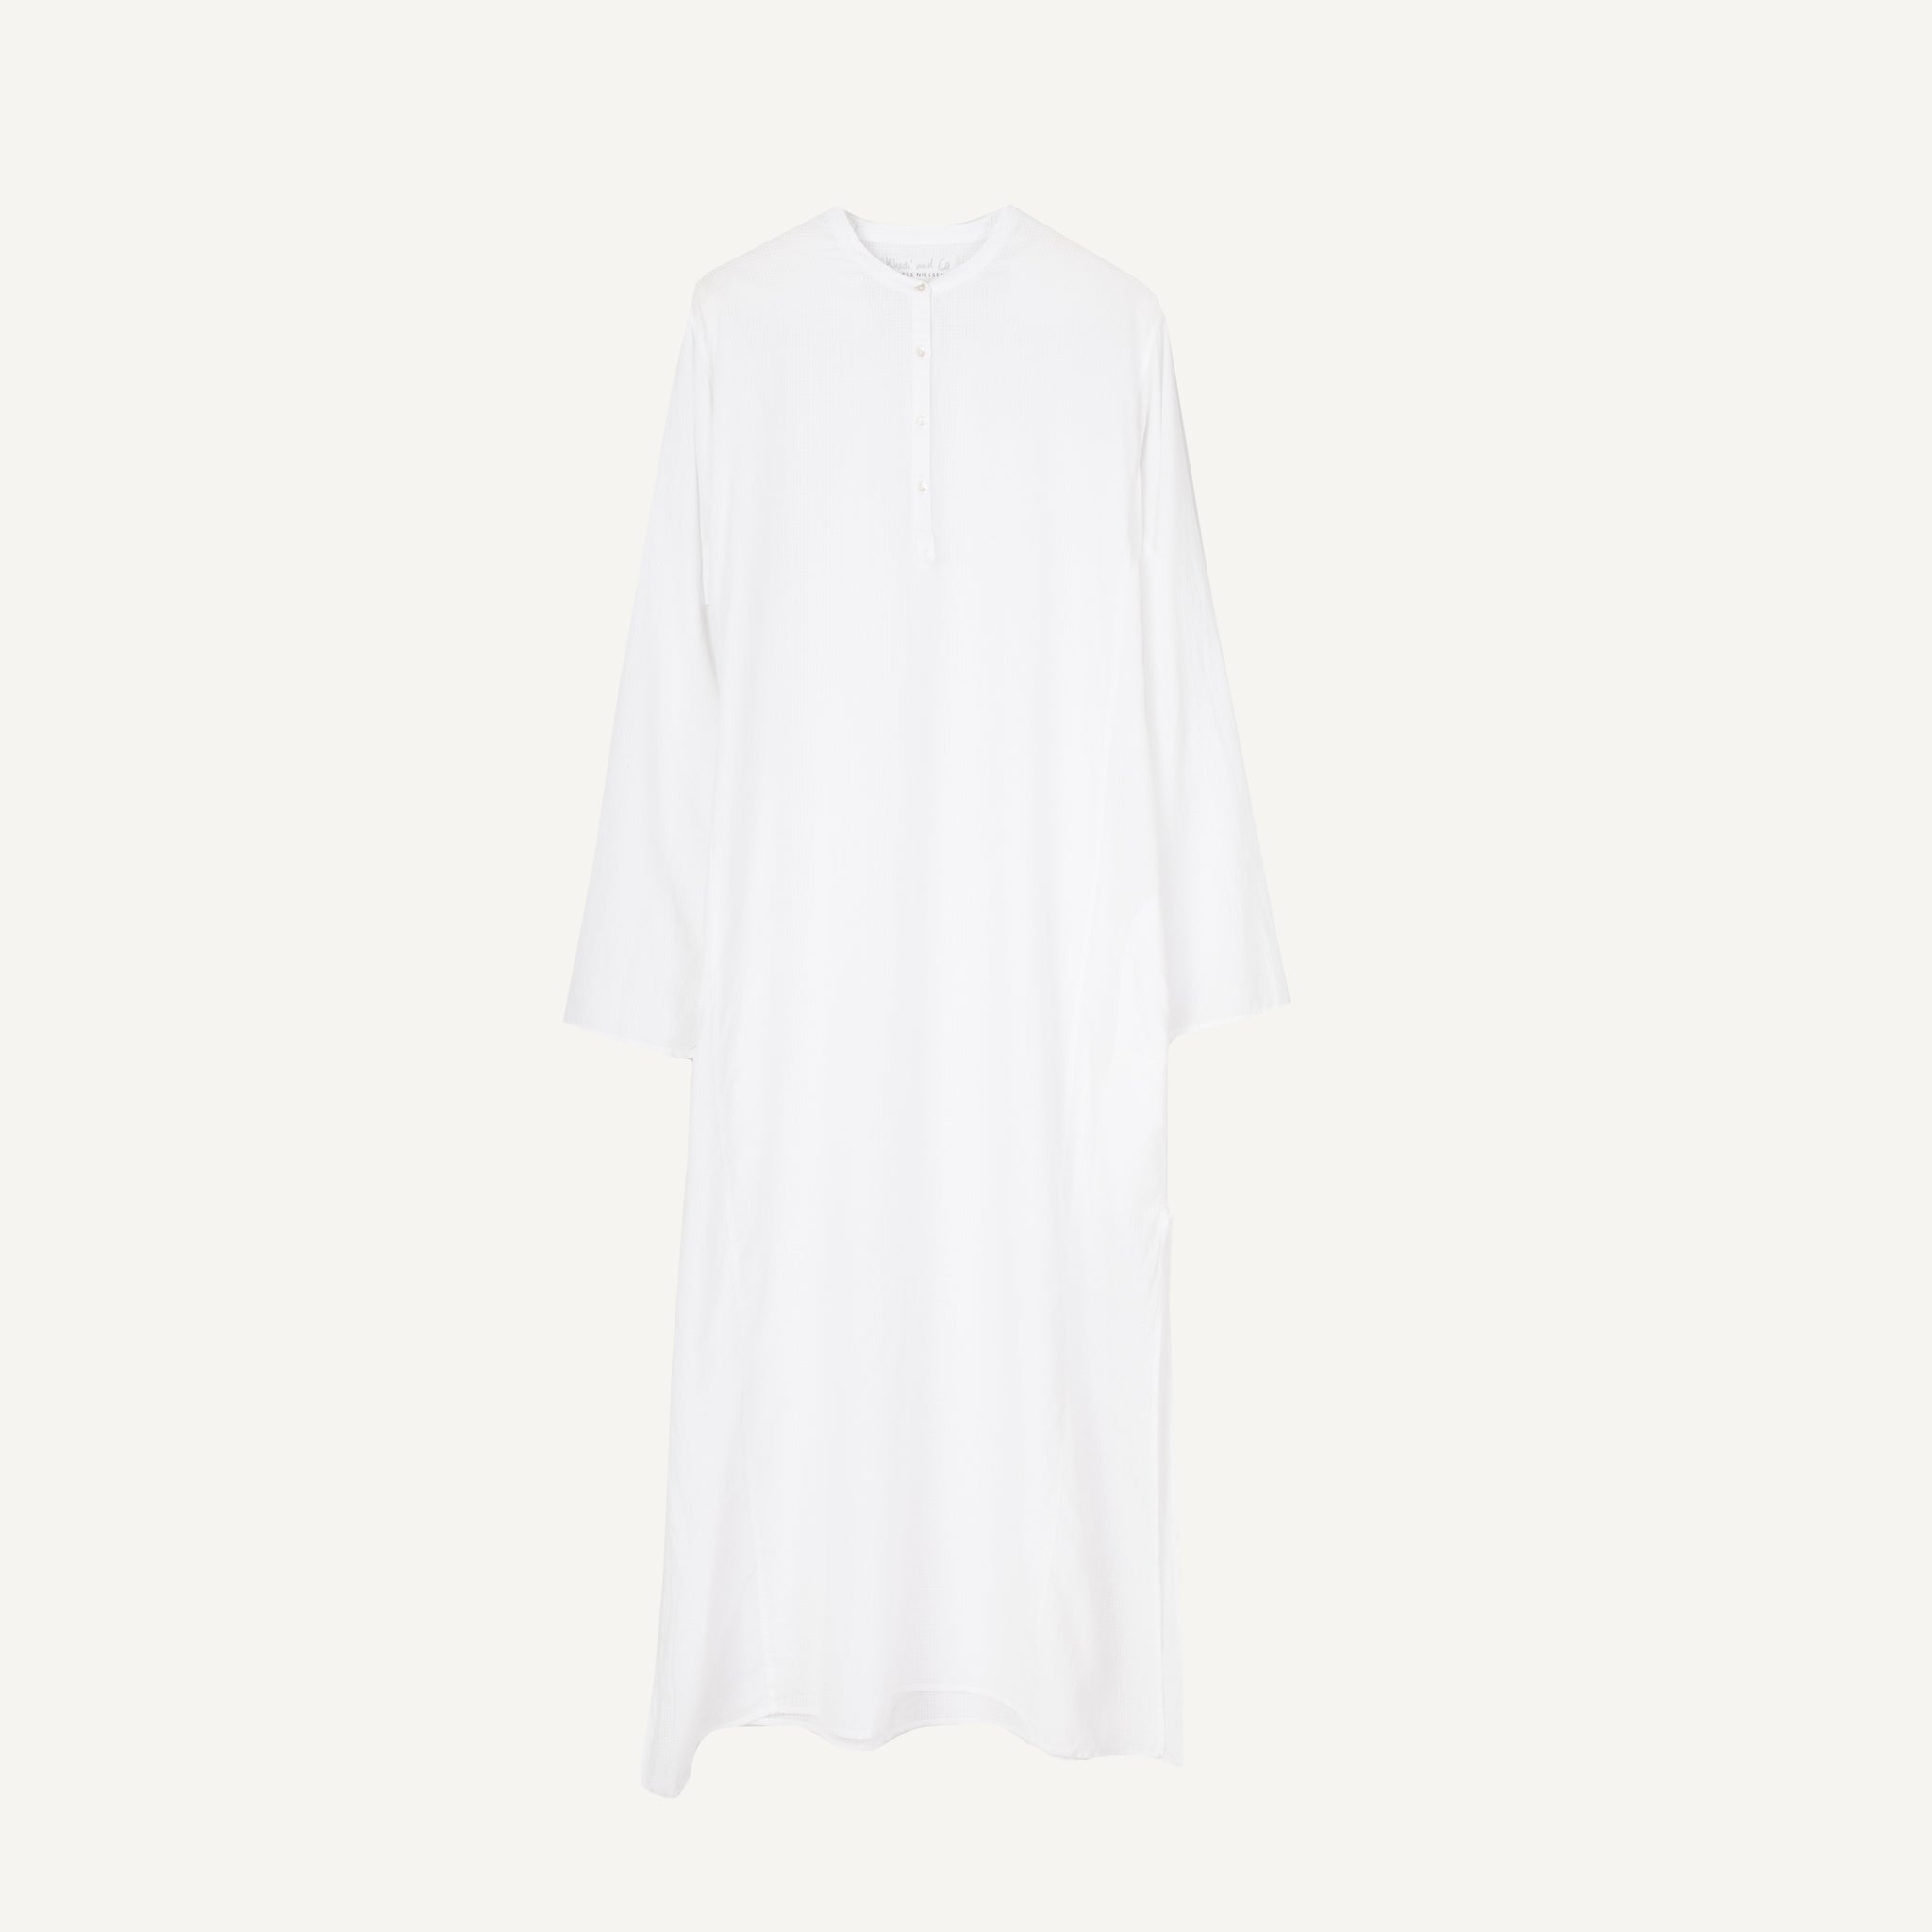 KHADI & CO. TAJ TUNIC